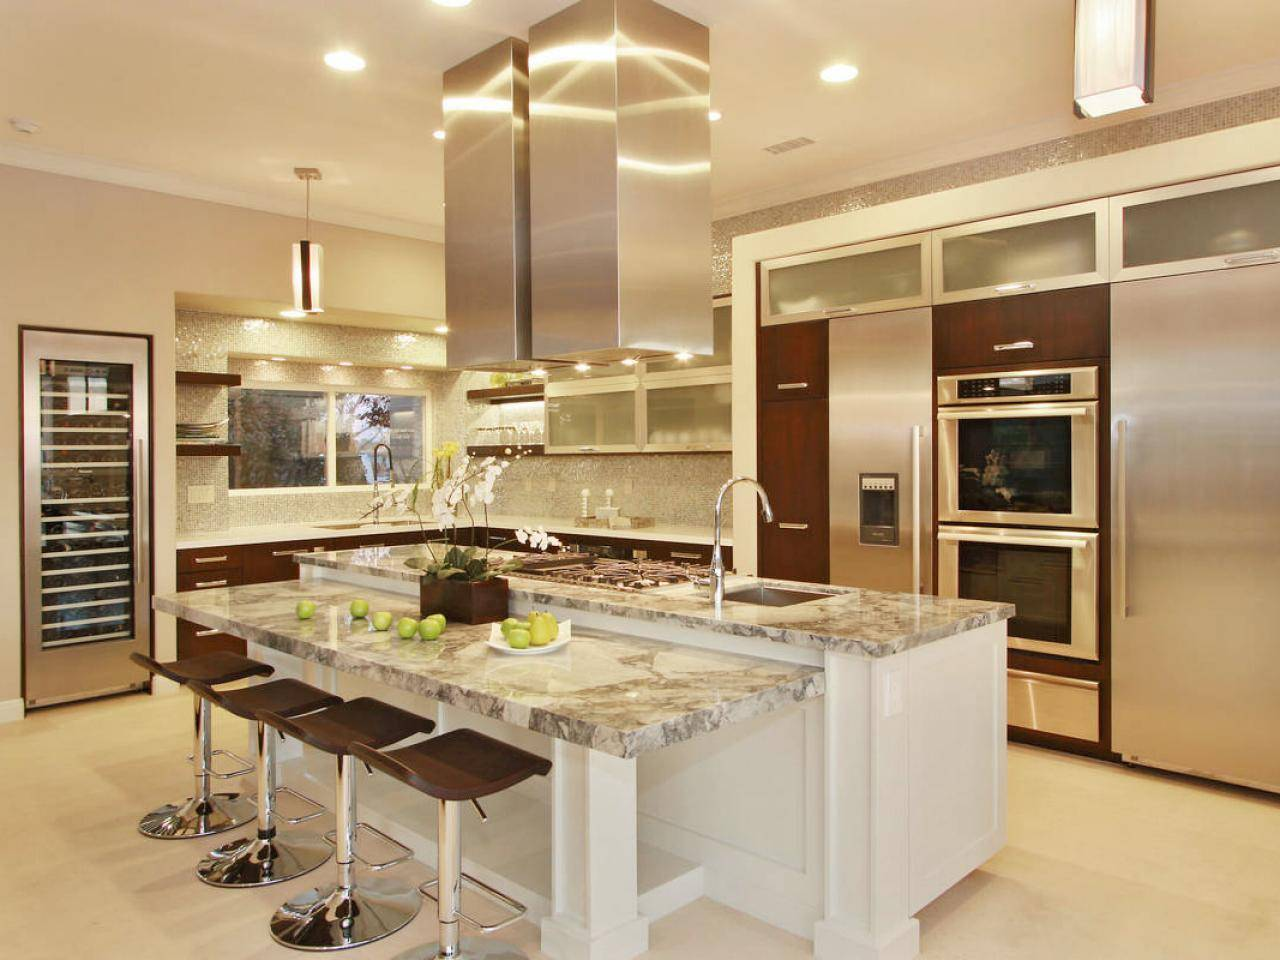 Best Kitchen Layout Ideas House Small Space